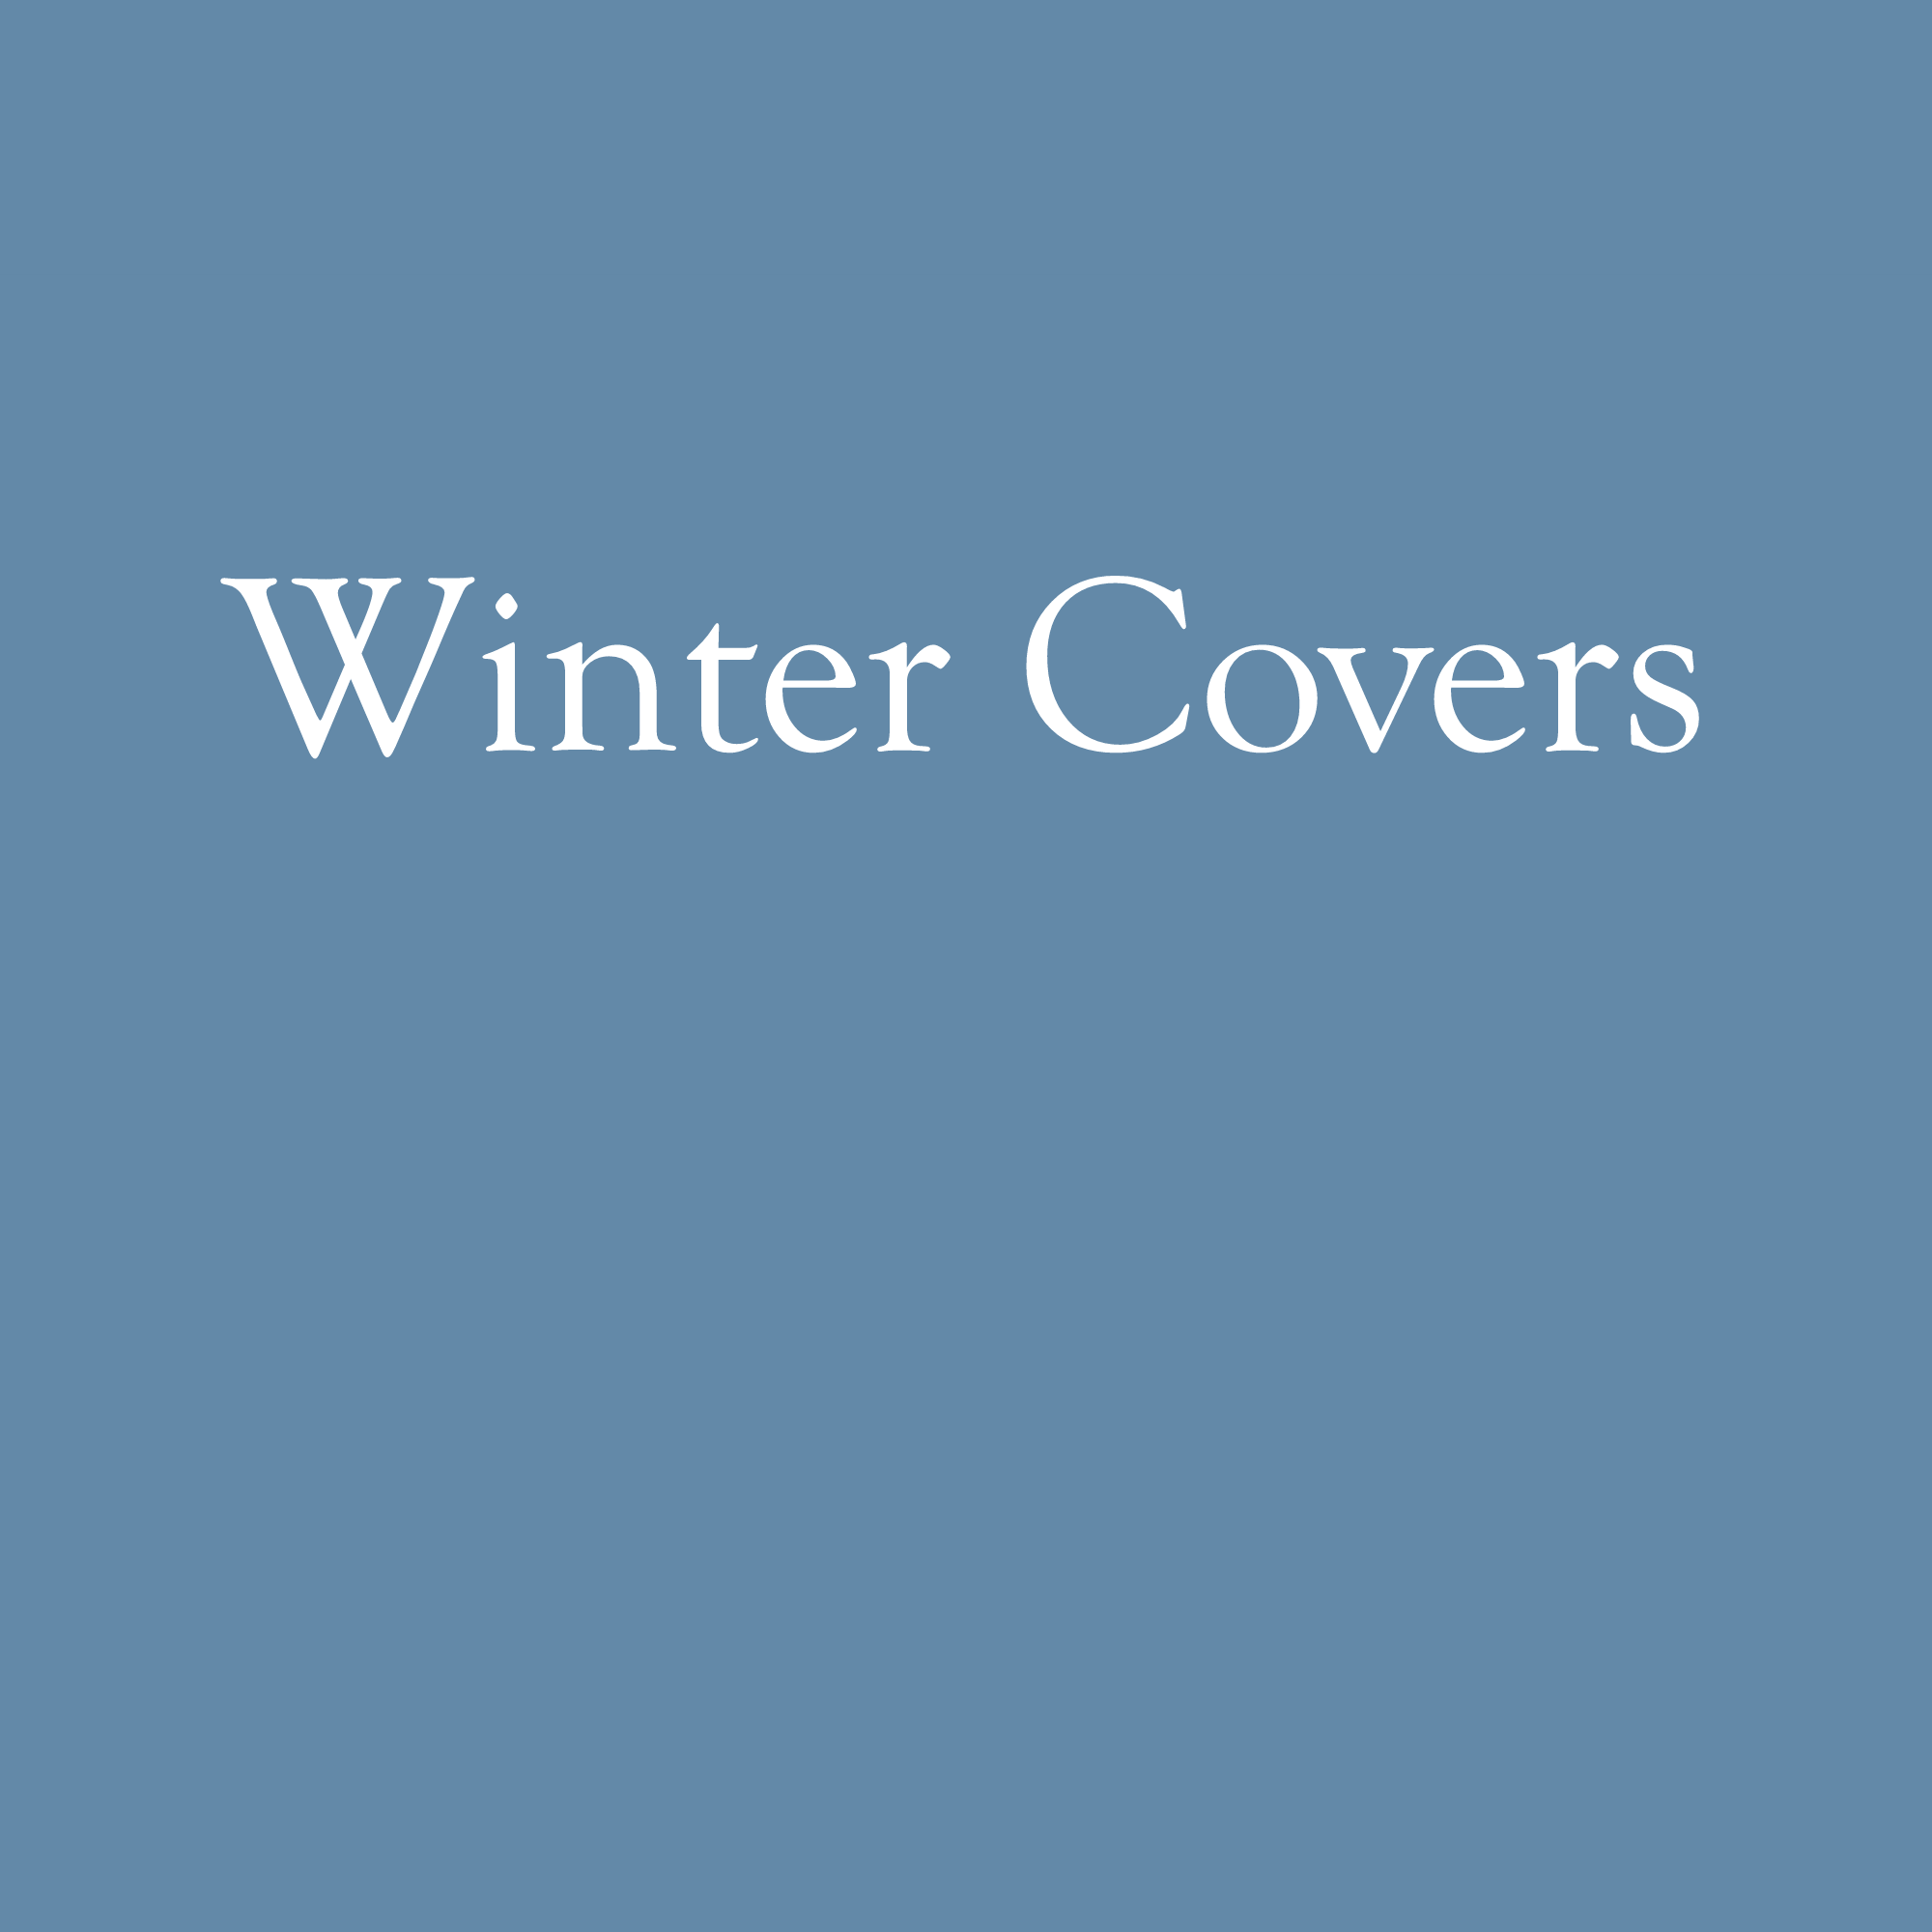 Winter Covers